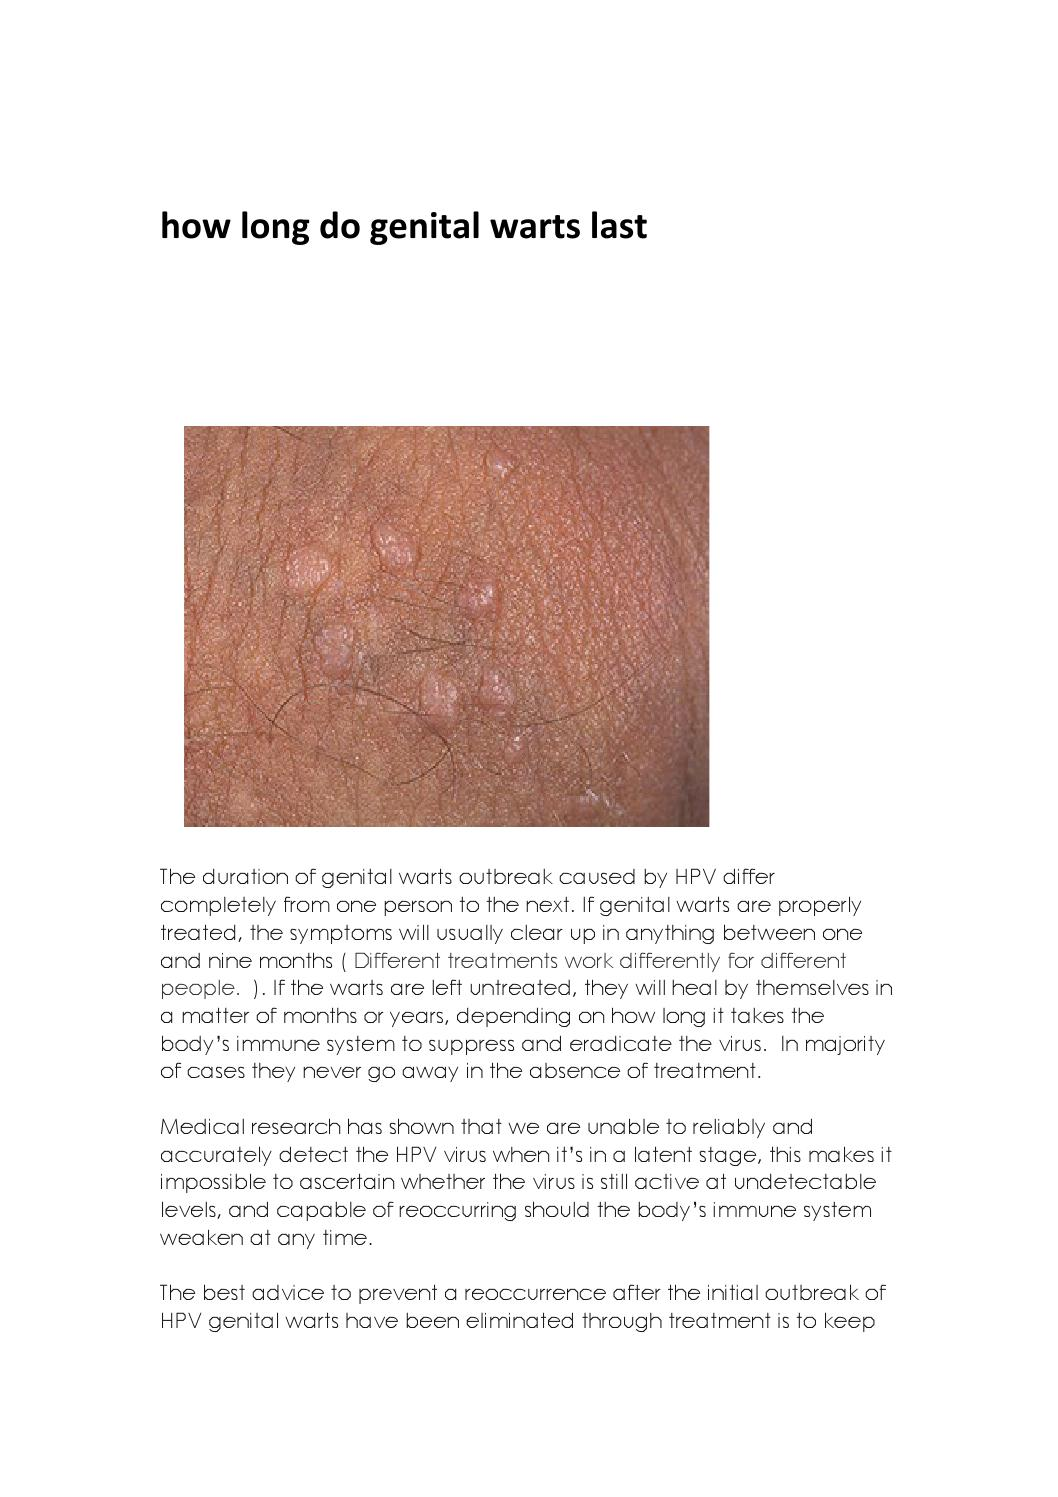 hpv warts go away on their own)